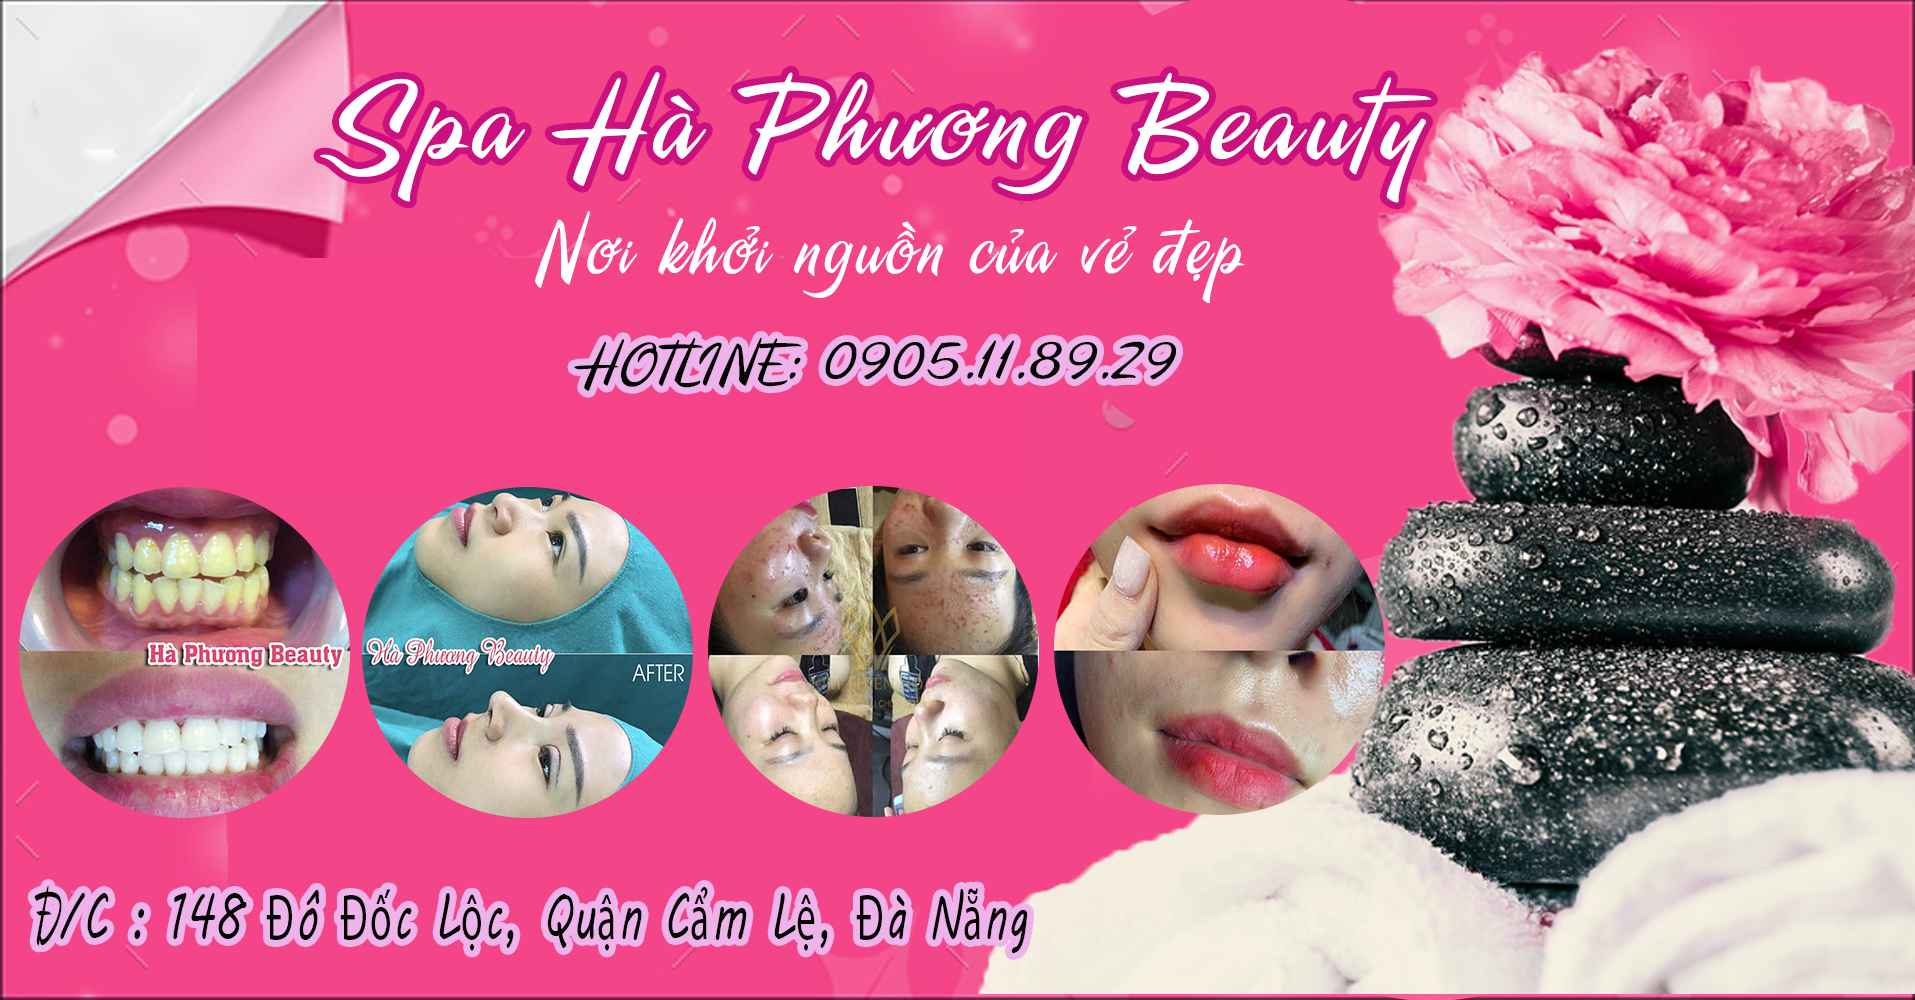 banner-spa-ha-phuong